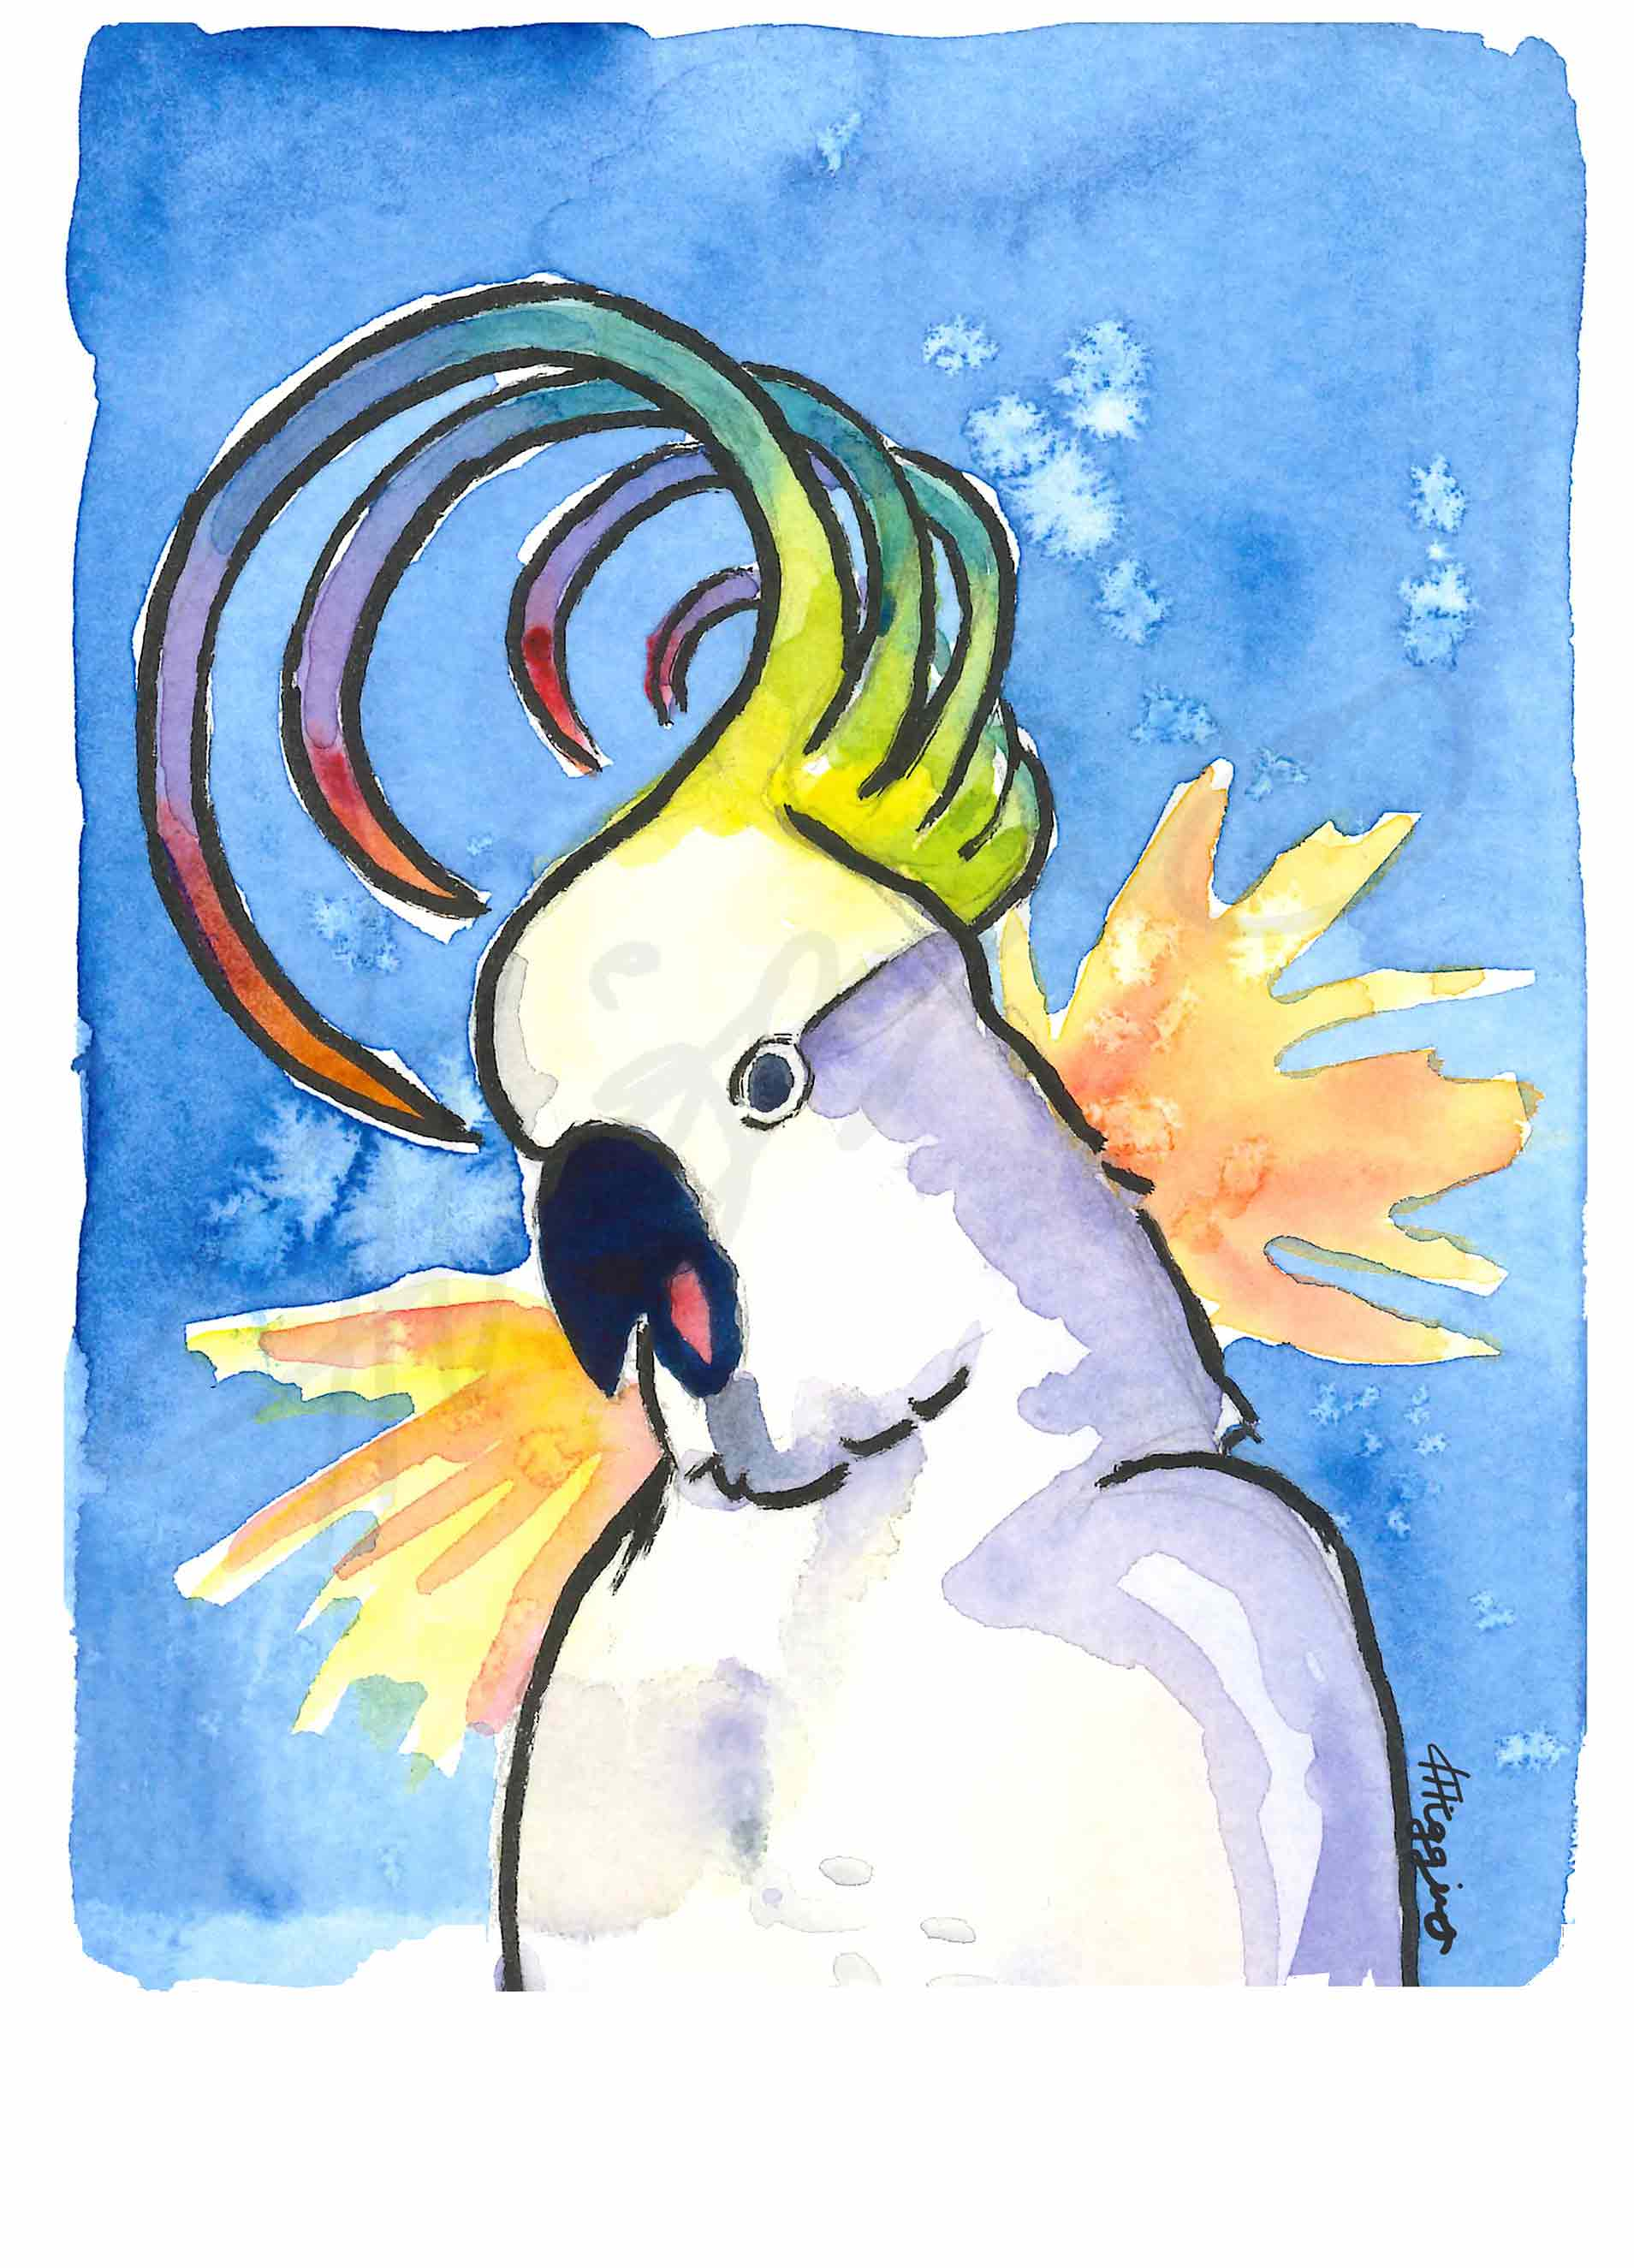 Vibrant watercolour painting of a screaming cockatoo with a rainbow-colored crest